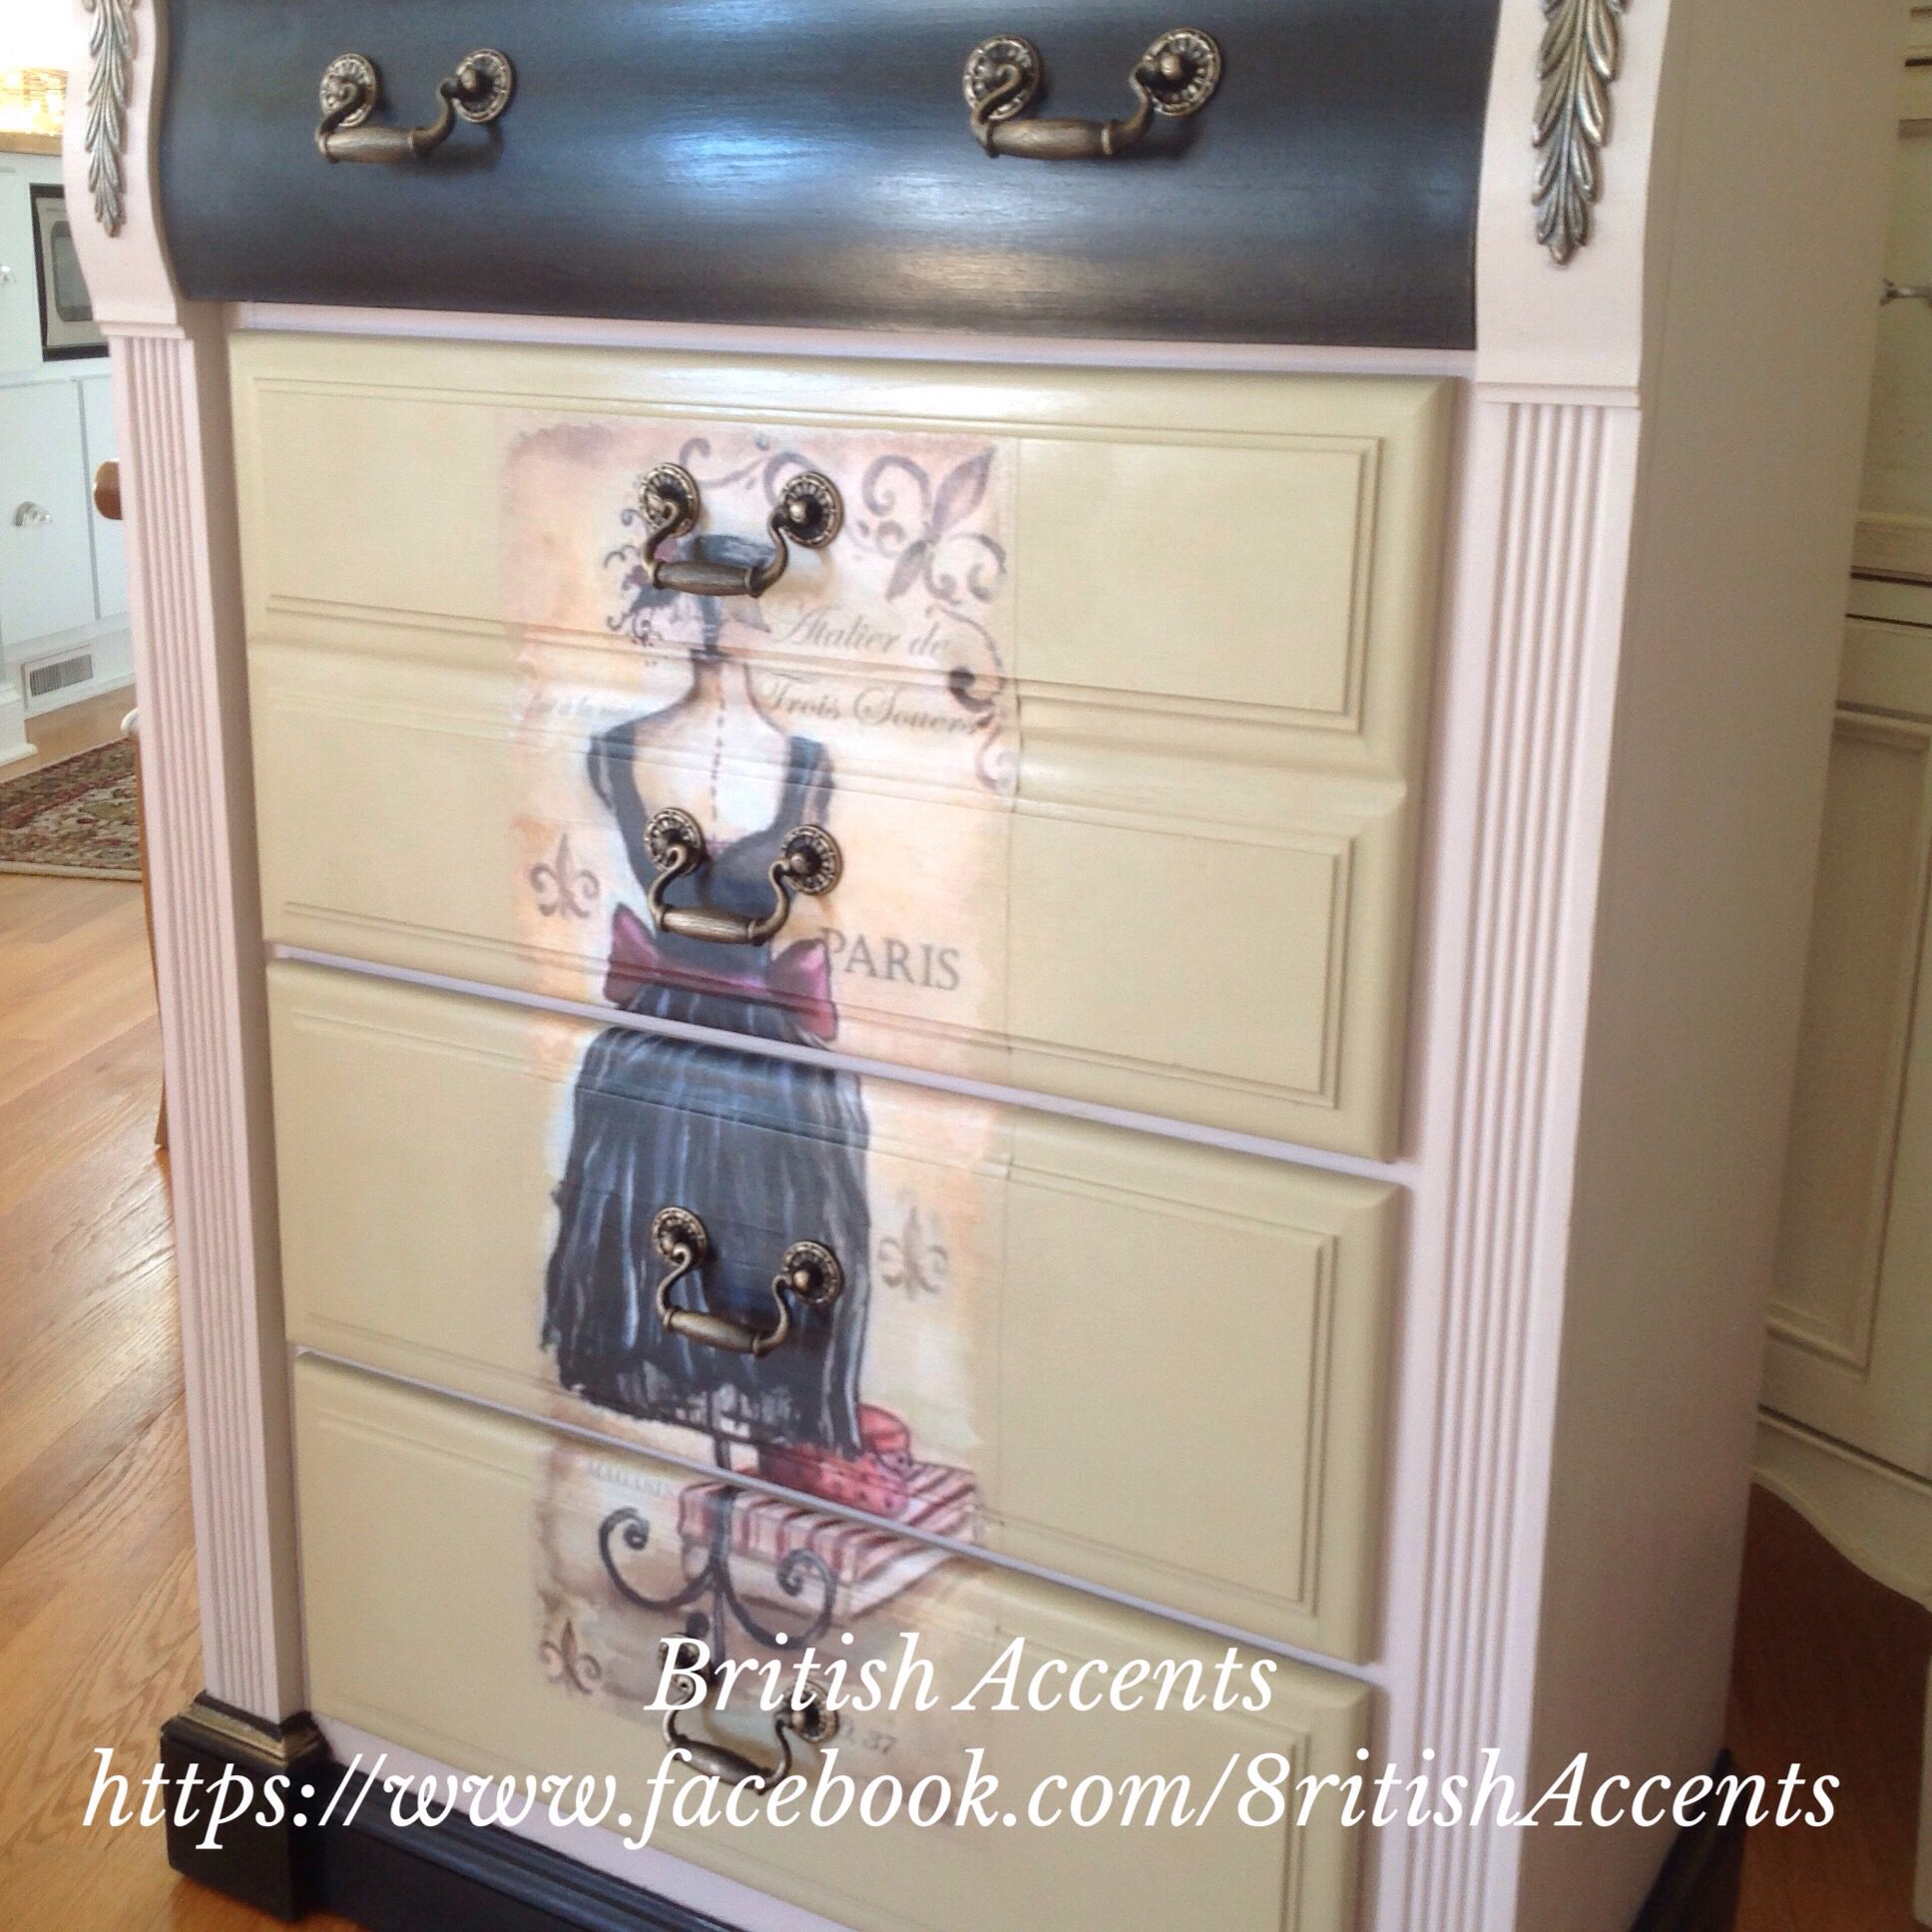 Hand painted and decoupaged dresser https://www.facebook.com/8ritishAccents